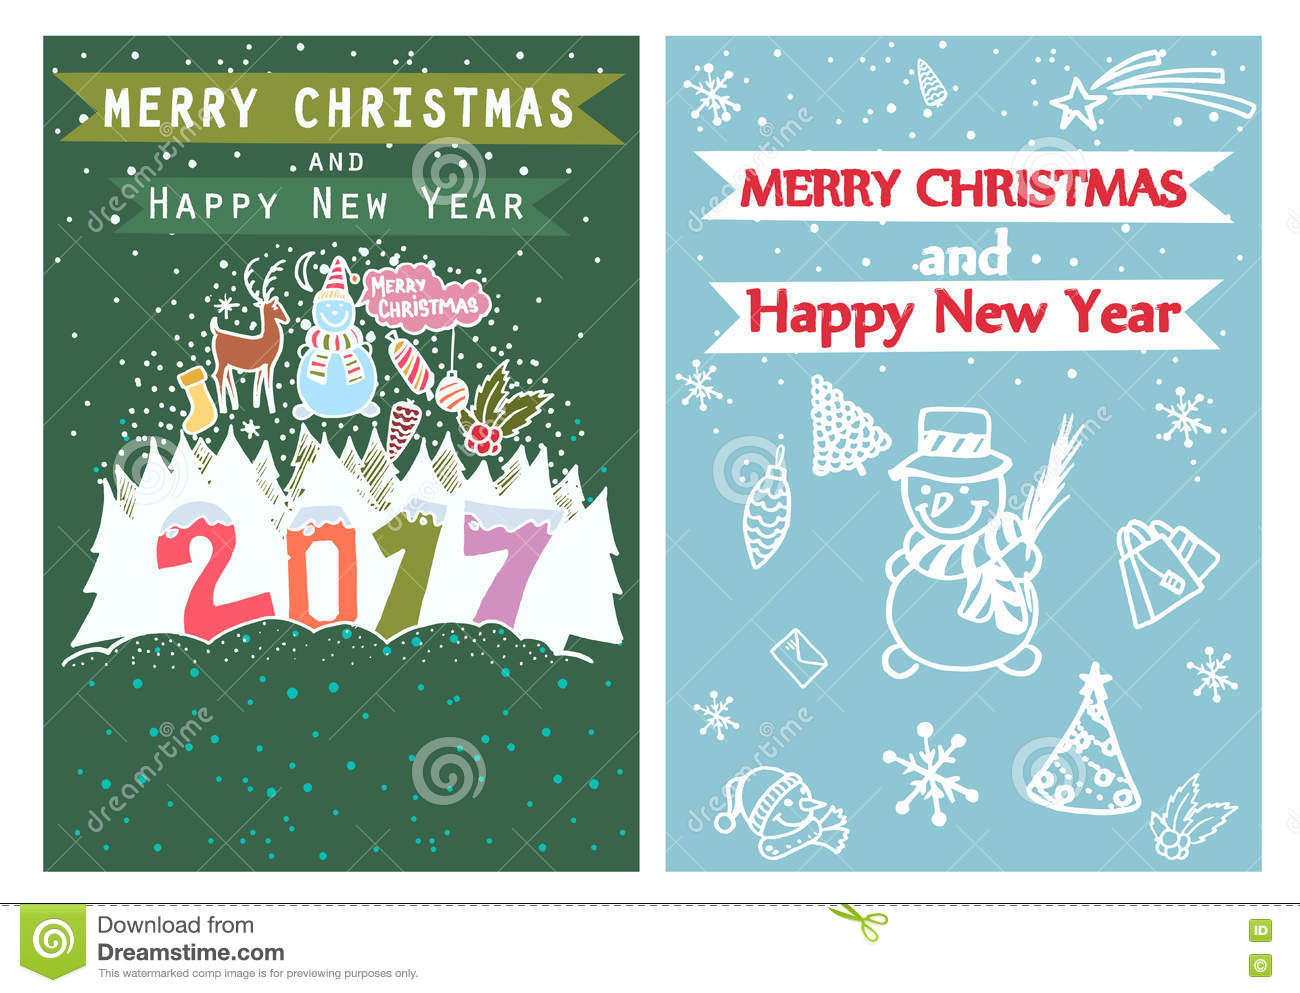 happy new year merry christmas family holidays greeting card templates artistic collection with